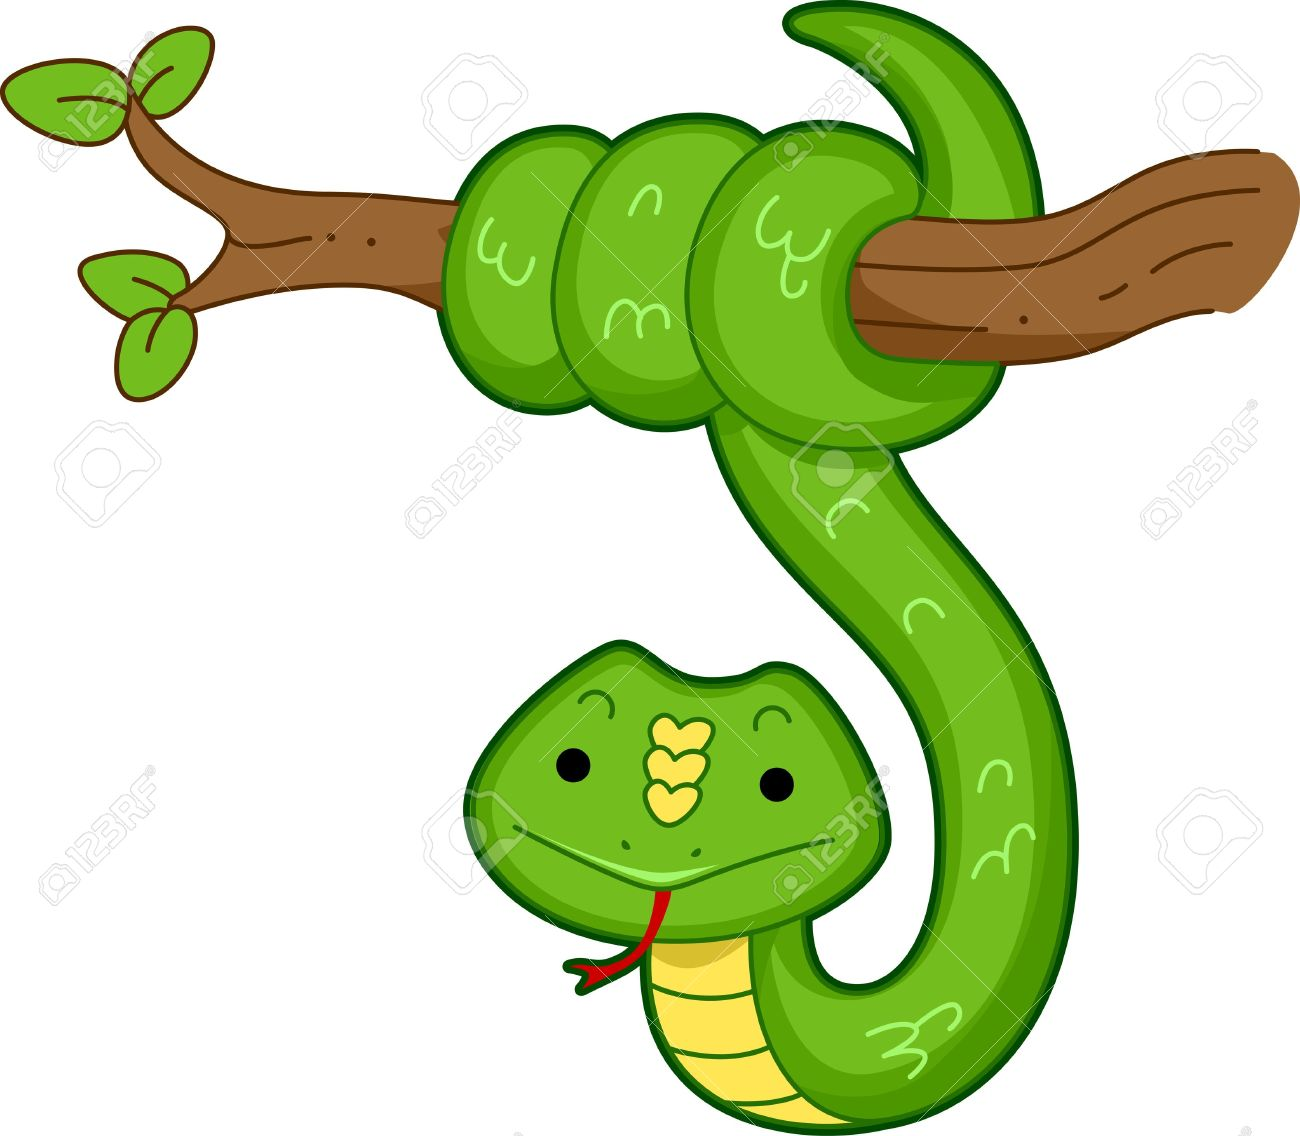 Snake Clipart For Kids at GetDrawings.com.